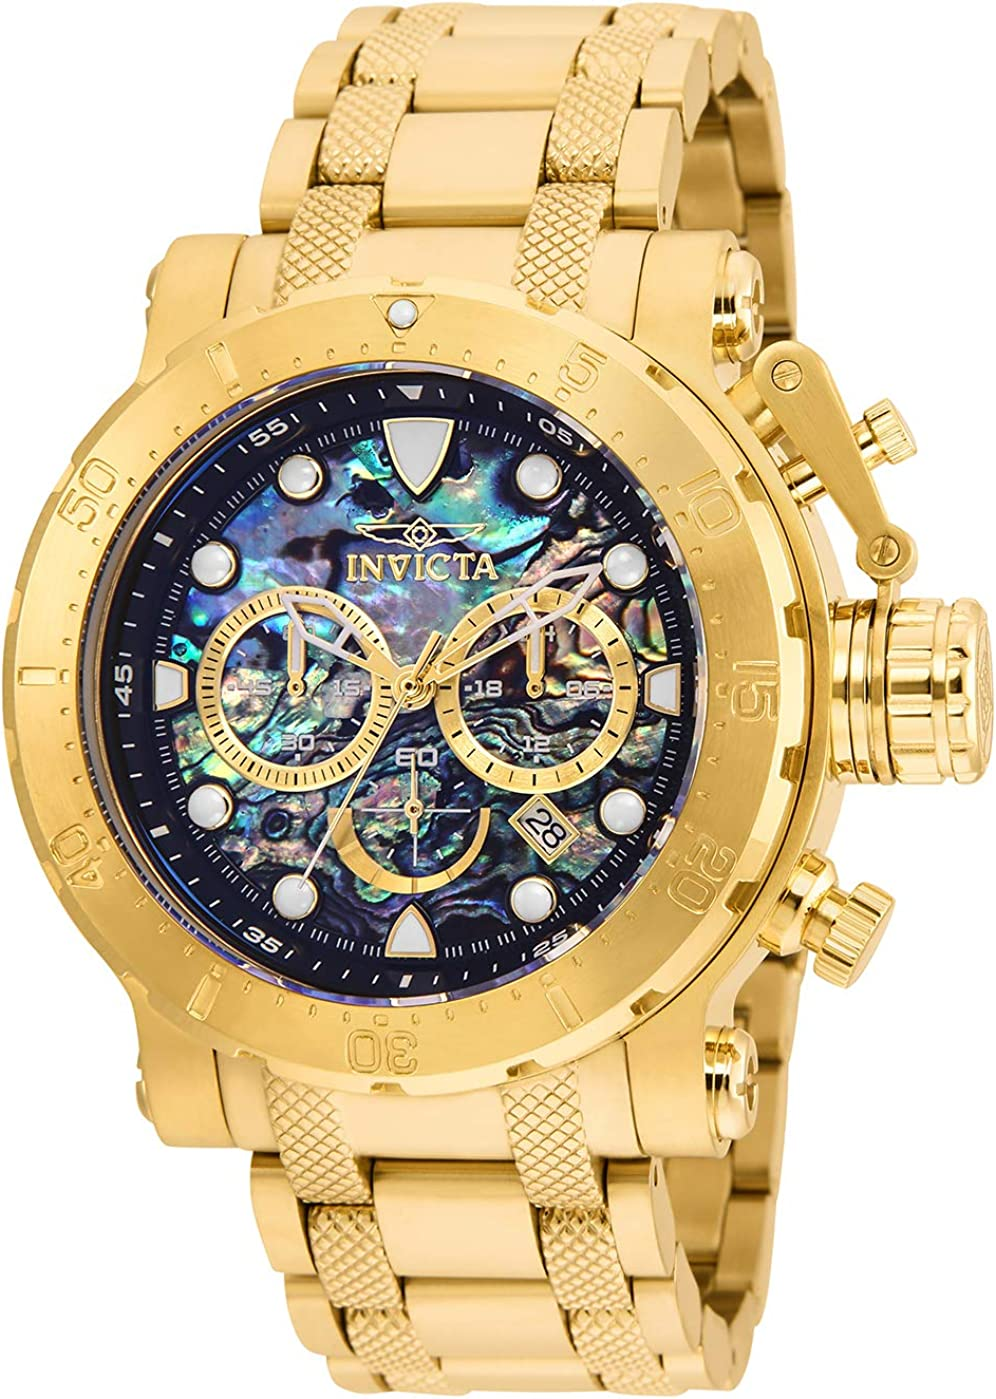 Invicta Men s Coalition Forces Quartz Watch with Stainless Steel Strap, Gold, 26 Model 26504